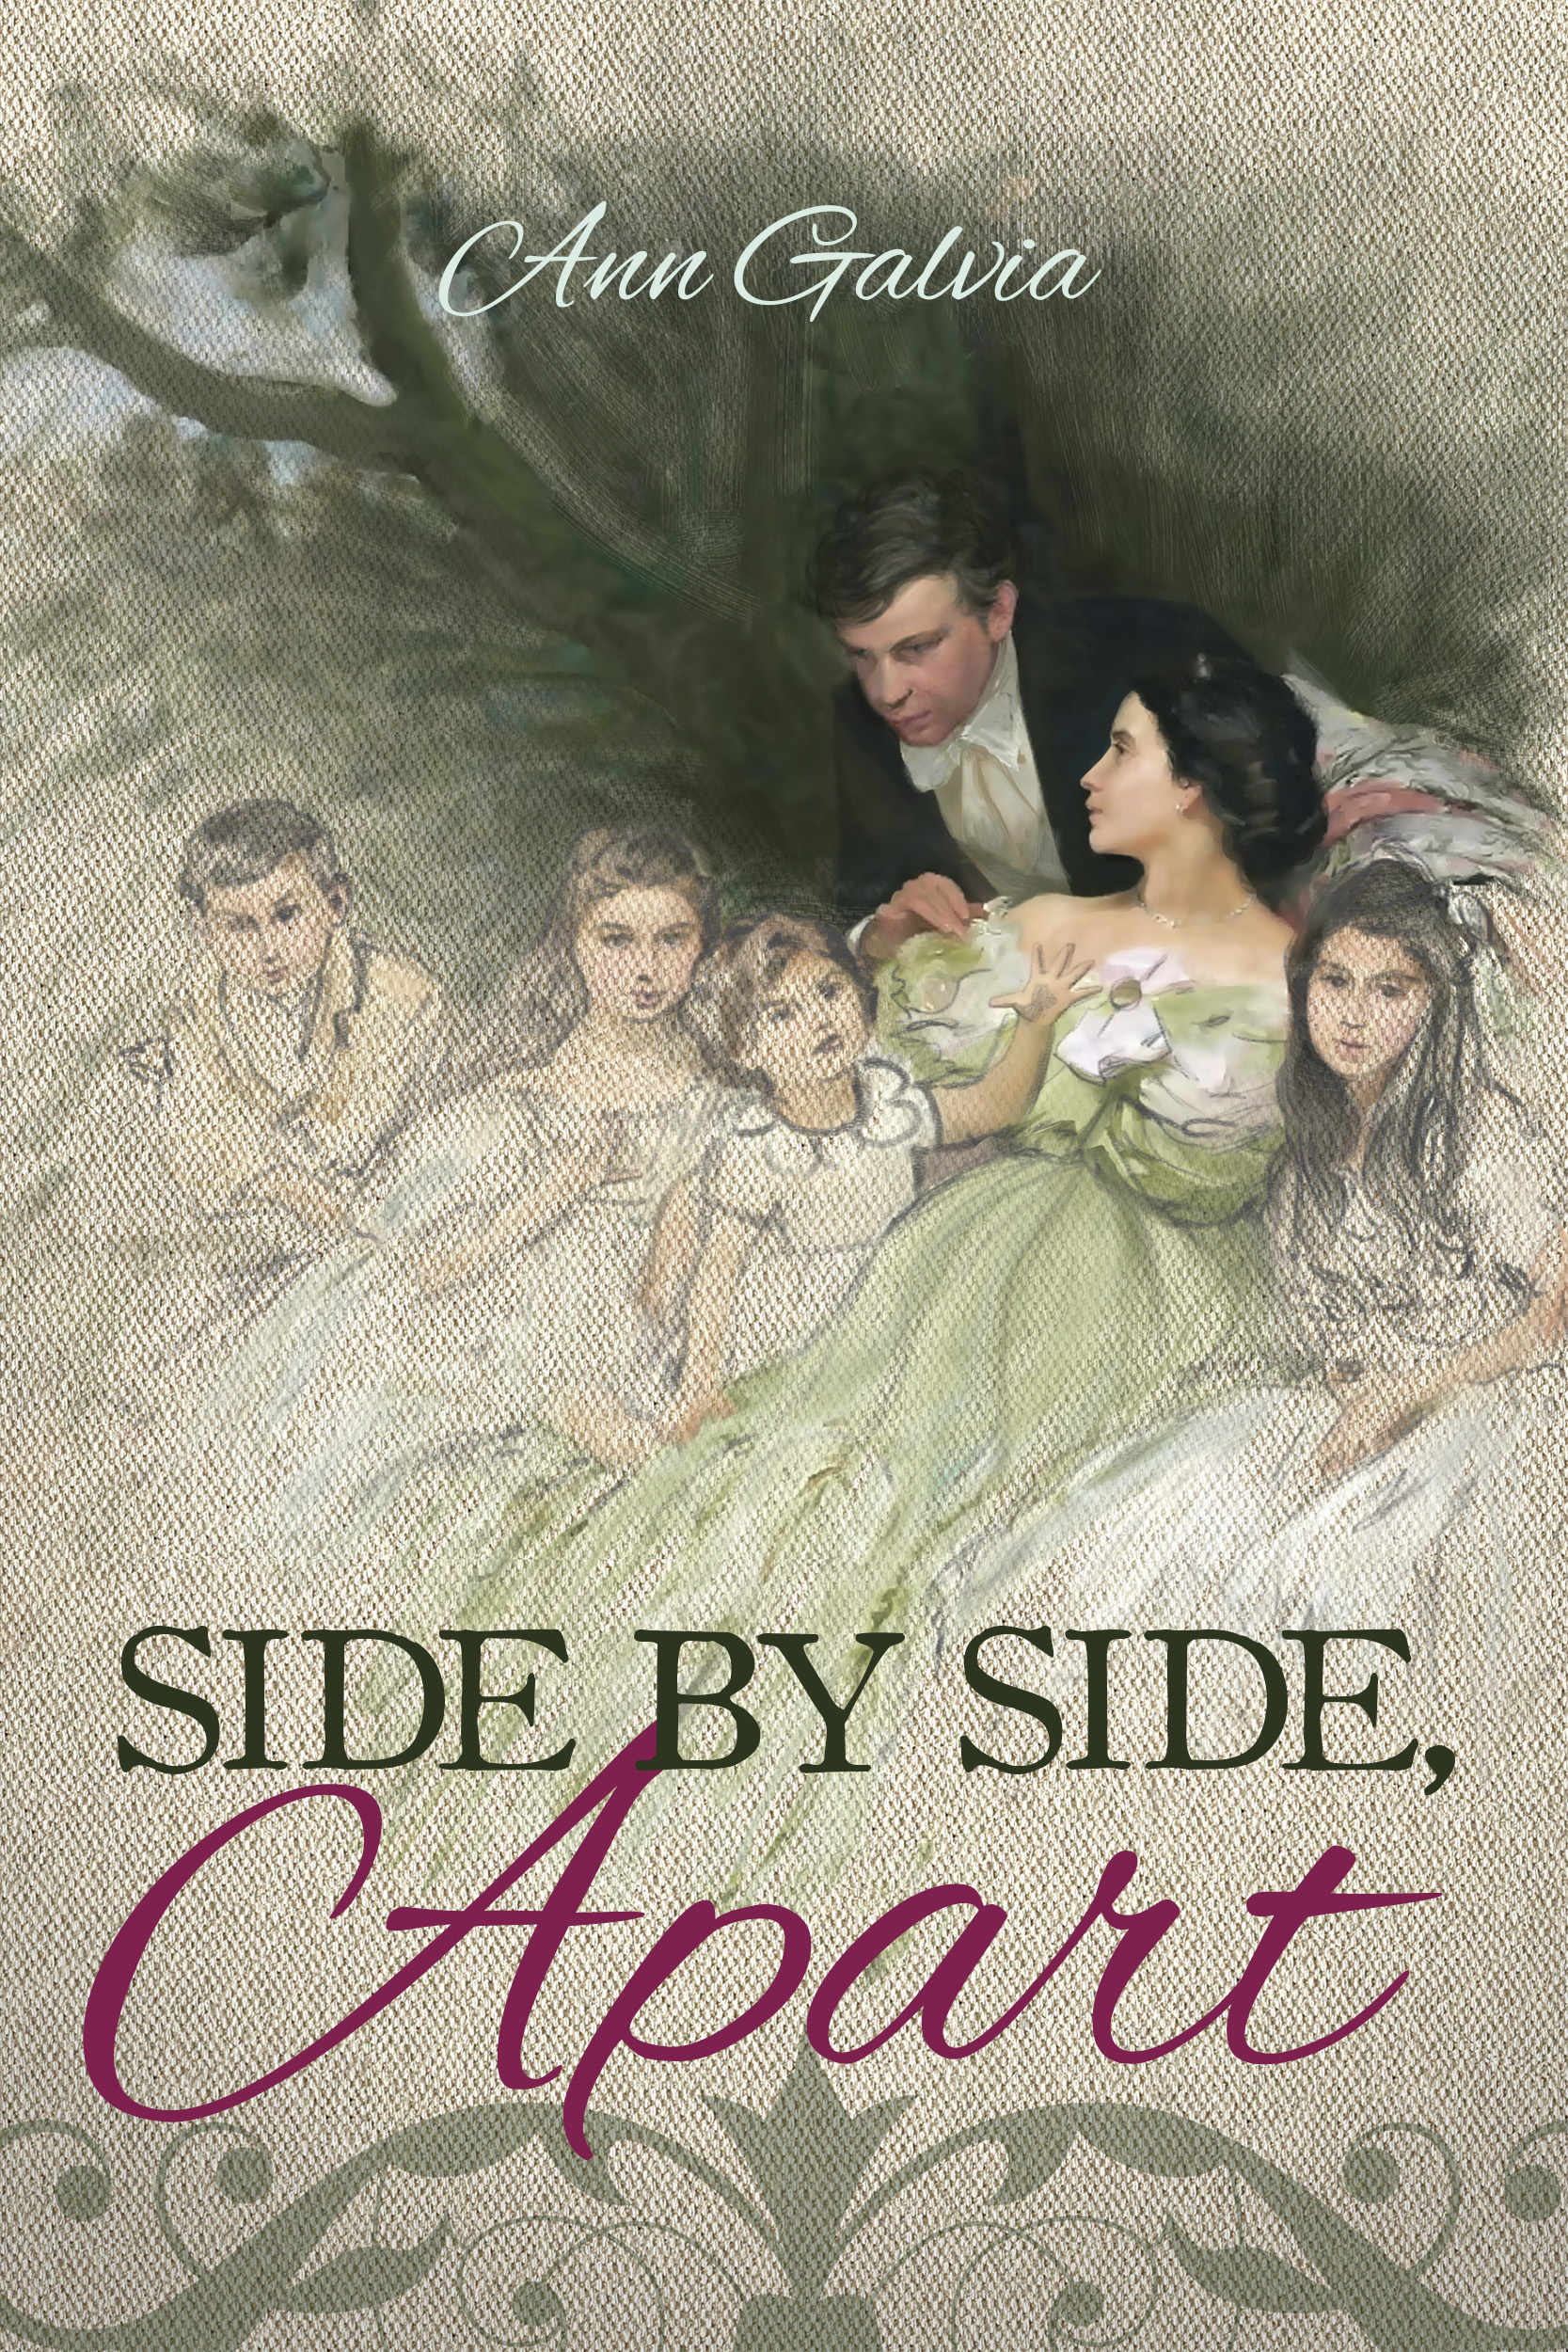 Side by Side, Apart by Ann Galvia